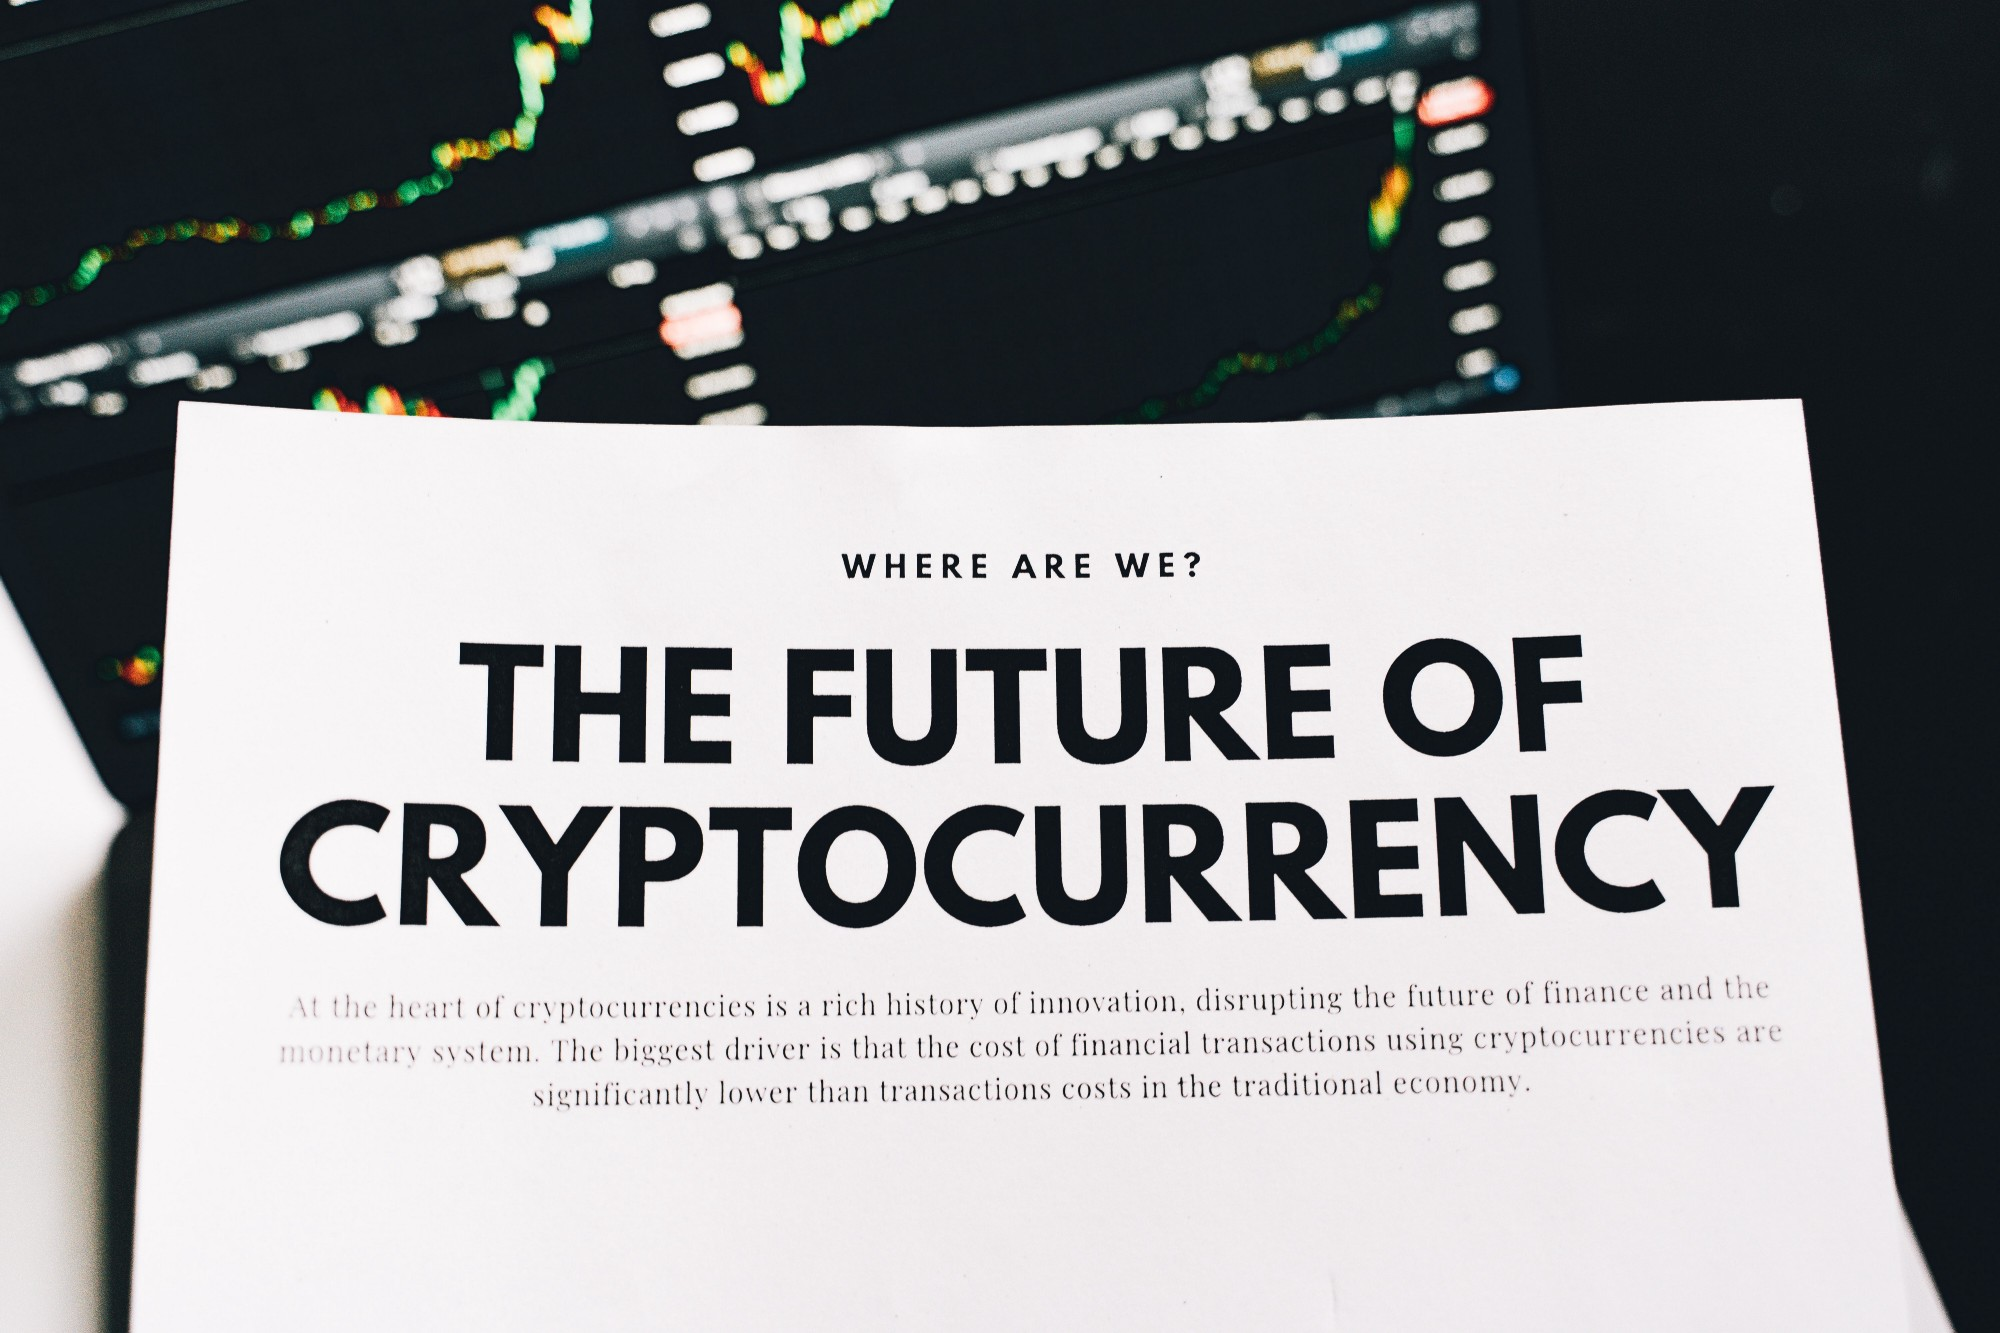 The future of cryptocurrency. Binance Smart Chain will overcome Ethereum